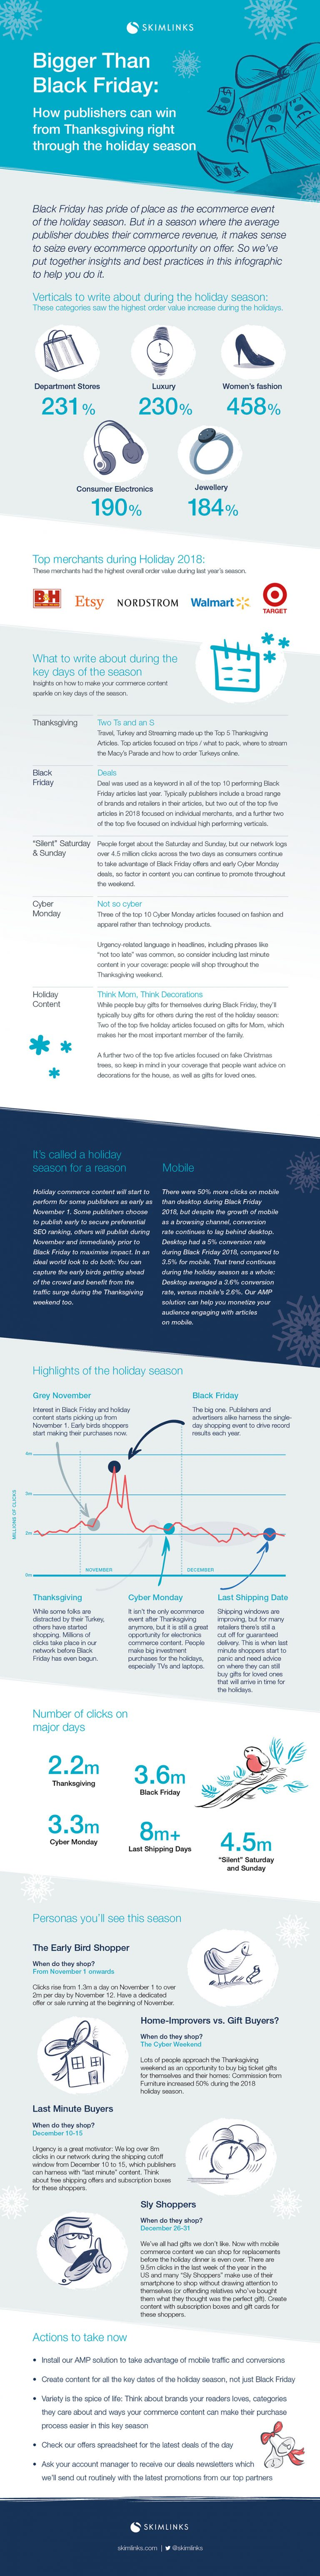 Bigger Than Black Friday: Boost Your Holiday Season Sales